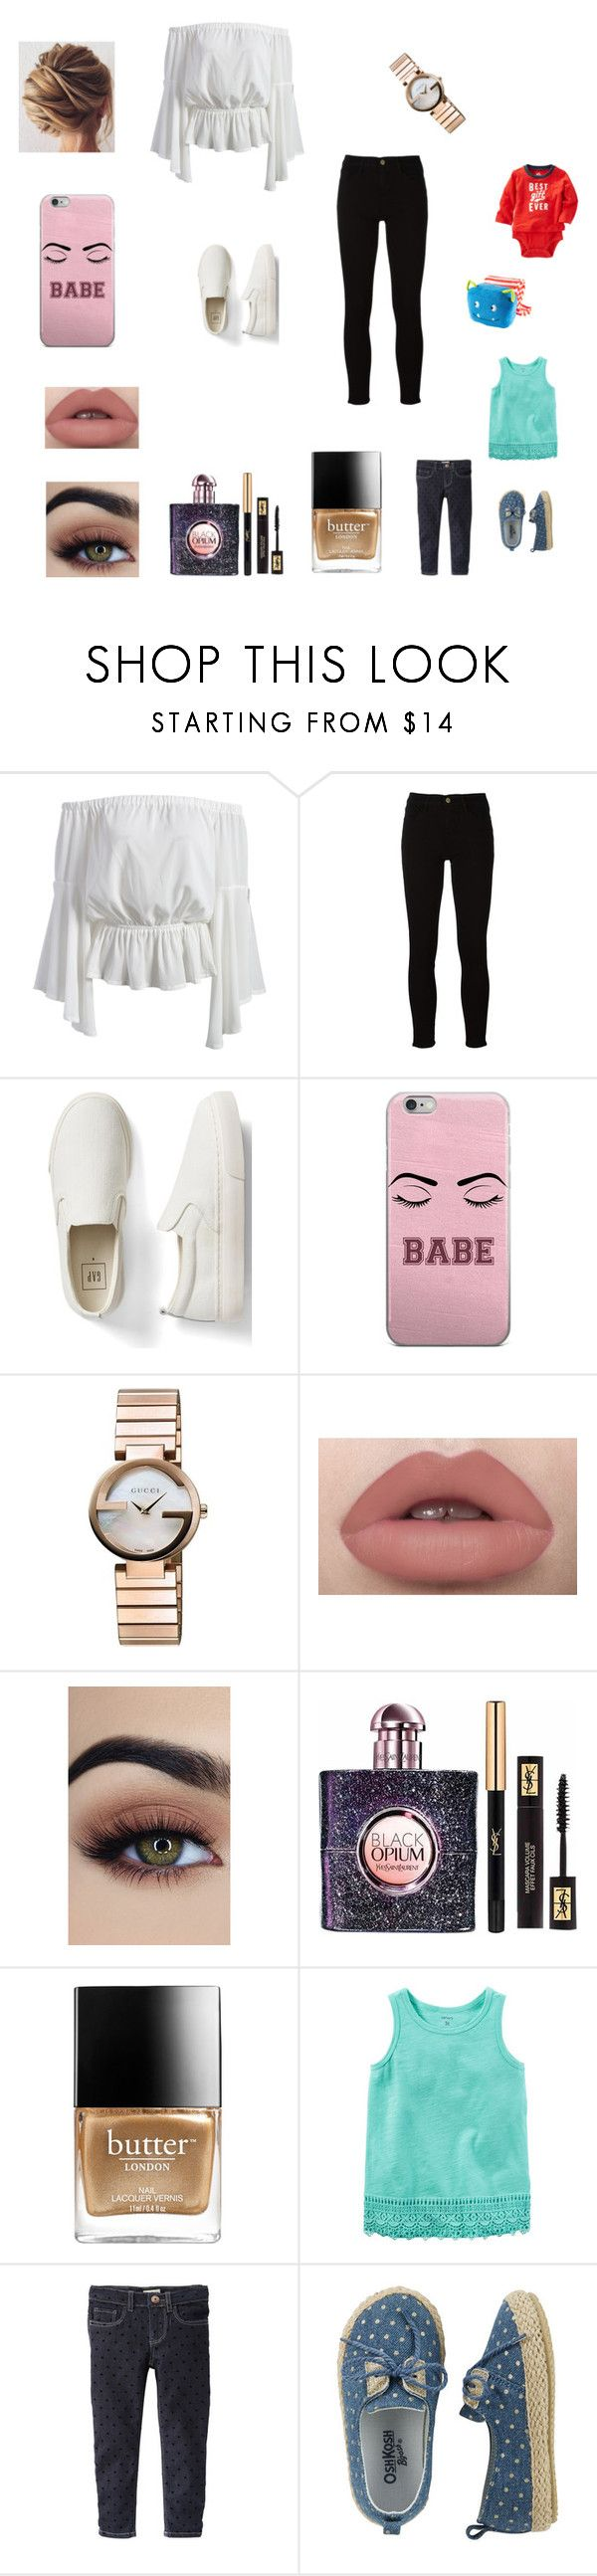 """Making late pancakes for the kids"" by bellzellz ❤ liked on Polyvore featuring Frame, Gap, Gucci, Yves Saint Laurent and Butter London"